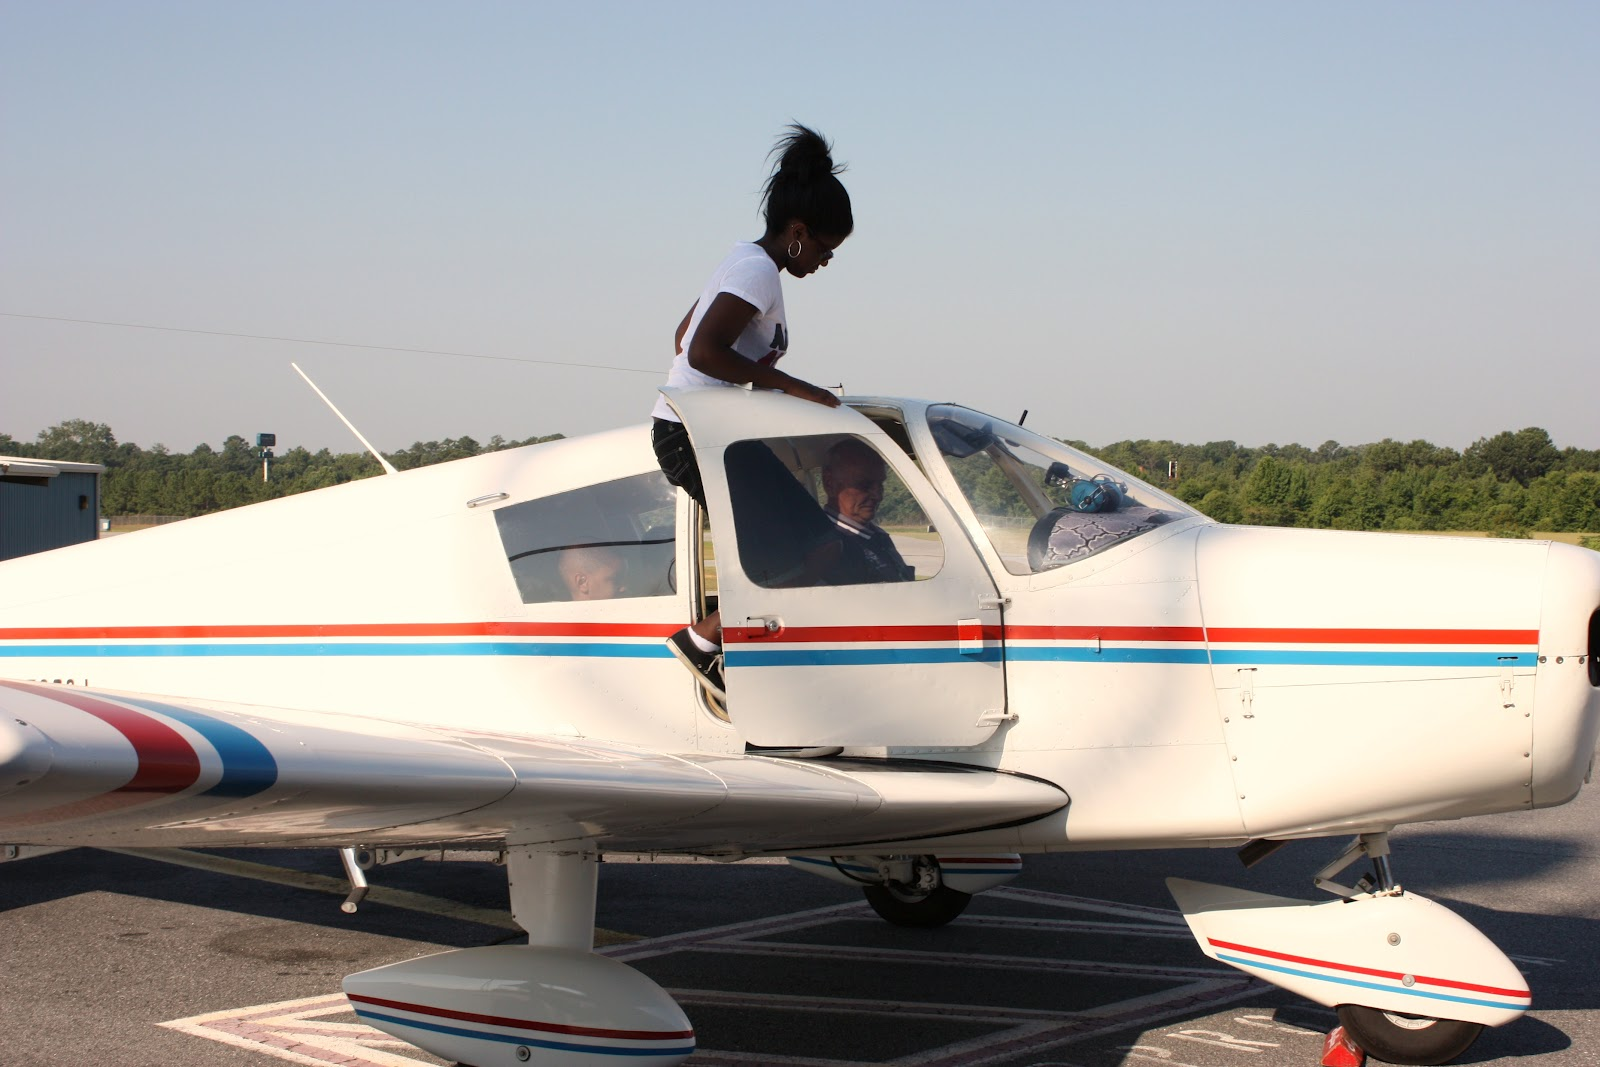 essay on aviation Database of free aviation essays - we have thousands of free essays across a wide range of subject areas sample aviation essays.